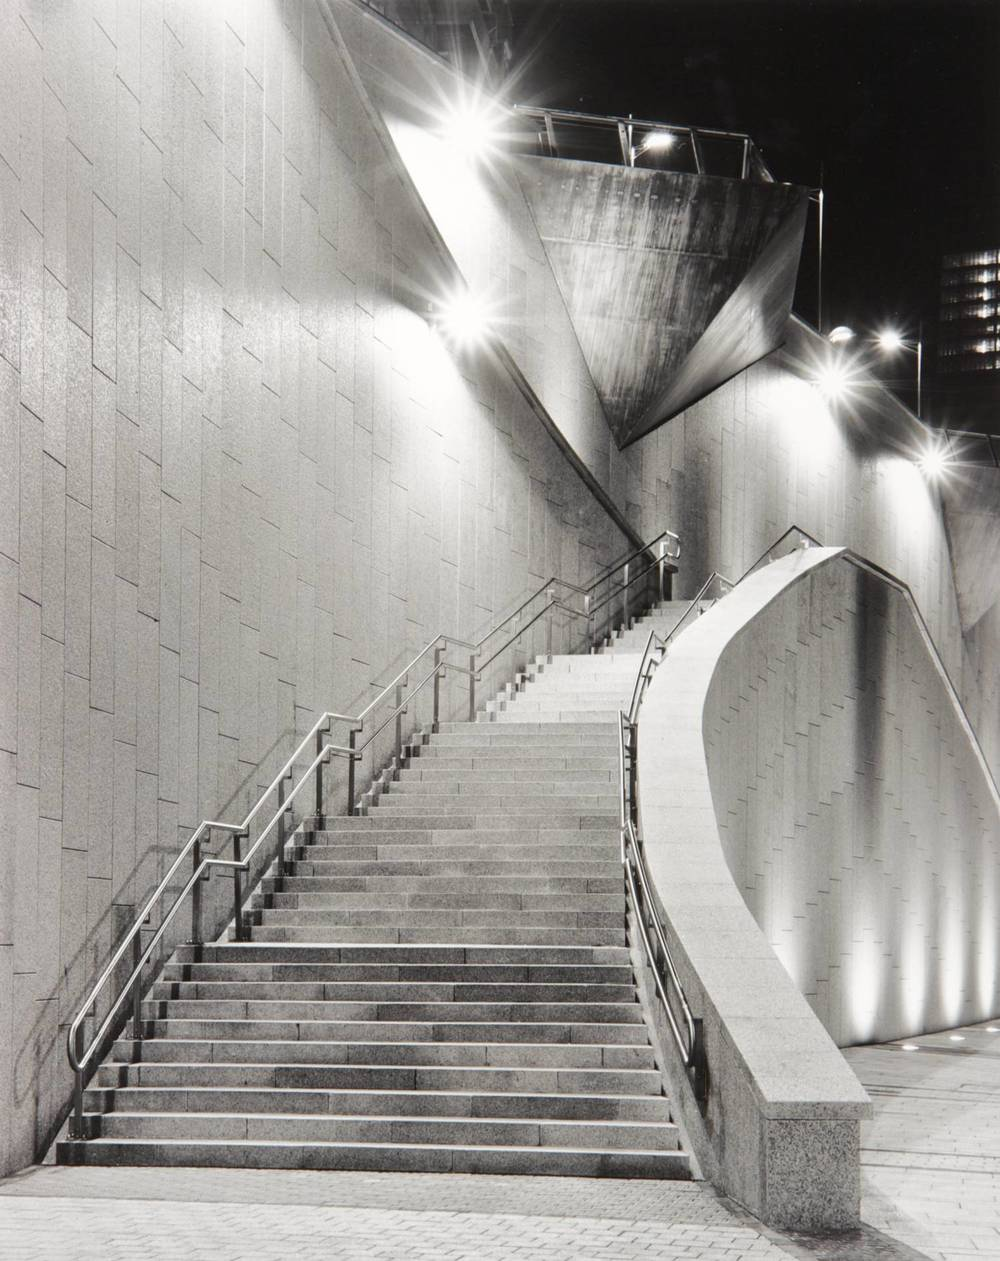 Night Stairs (Bilbao, Spain)